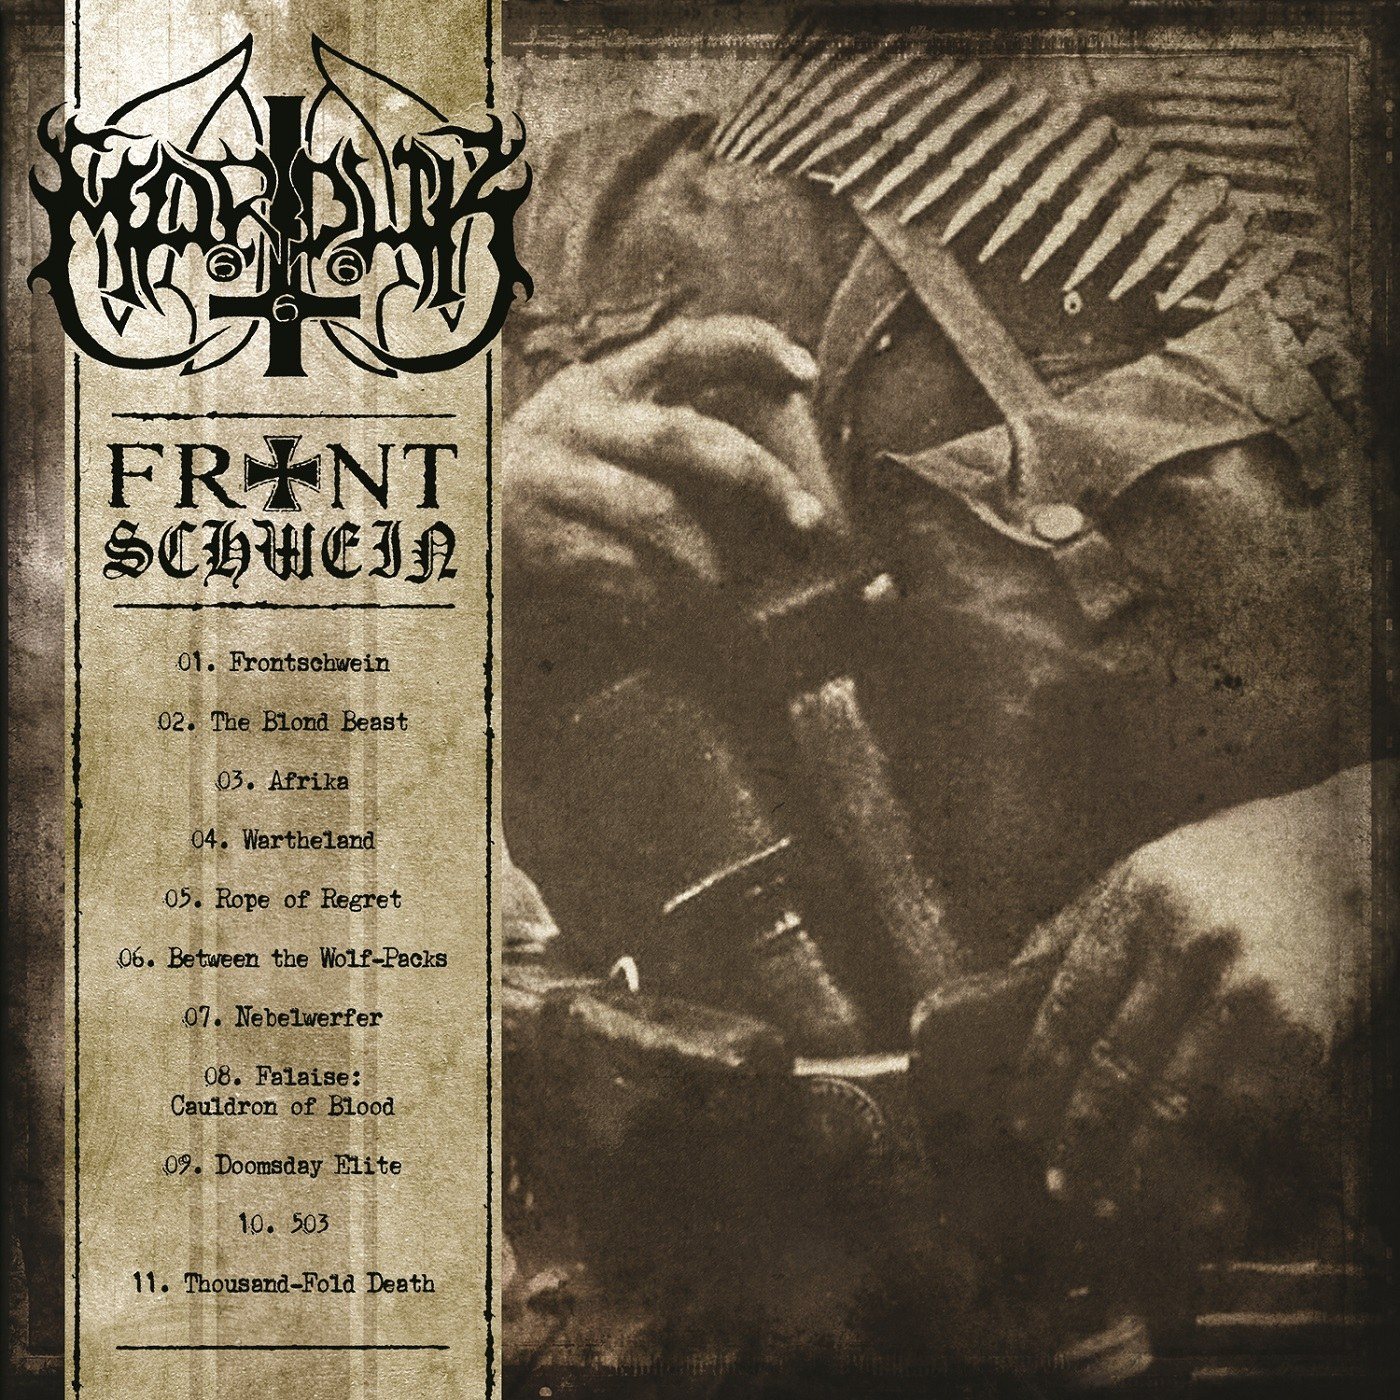 Review for Marduk - Frontschwein